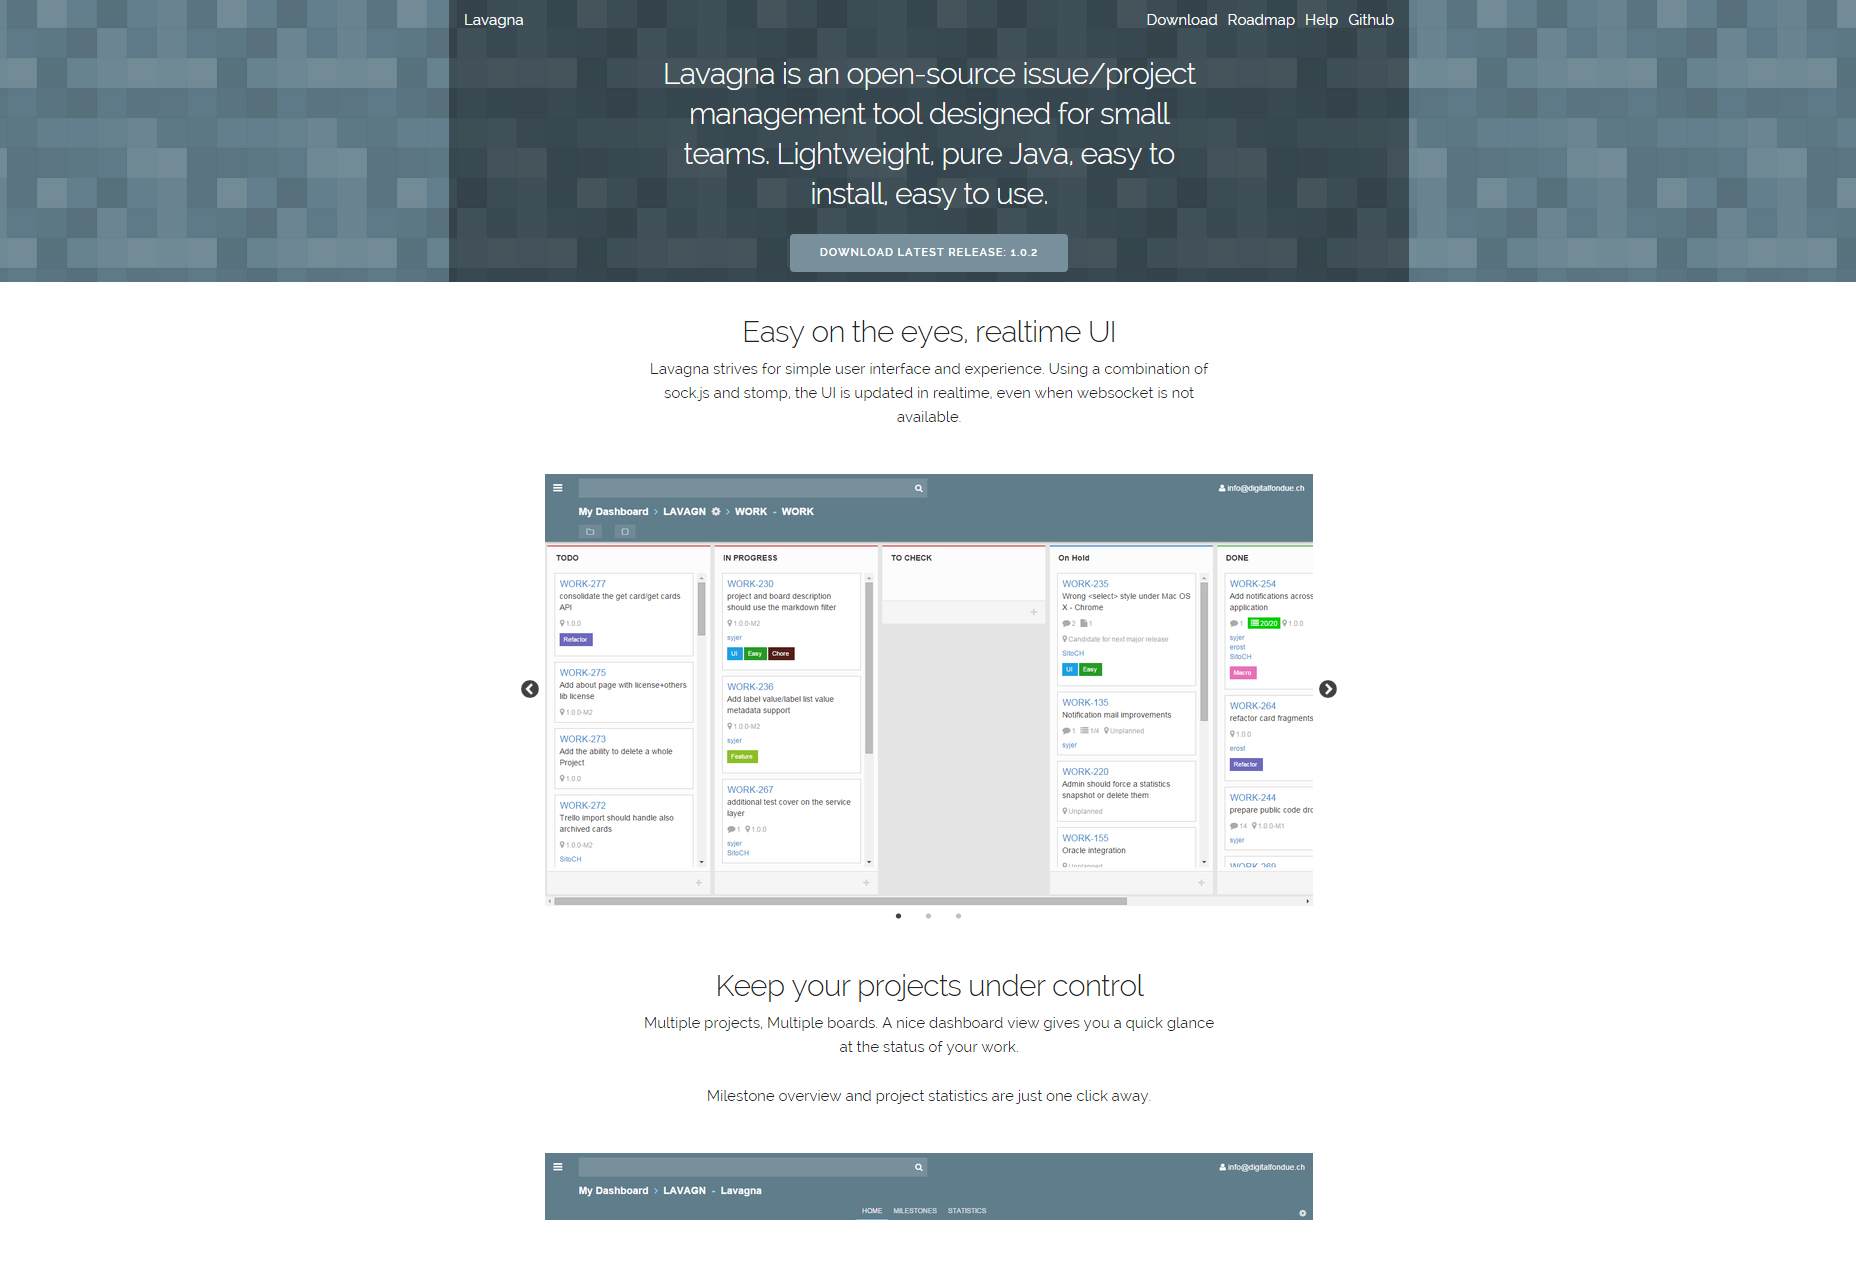 Lavagna: Open-source Project Management Tool